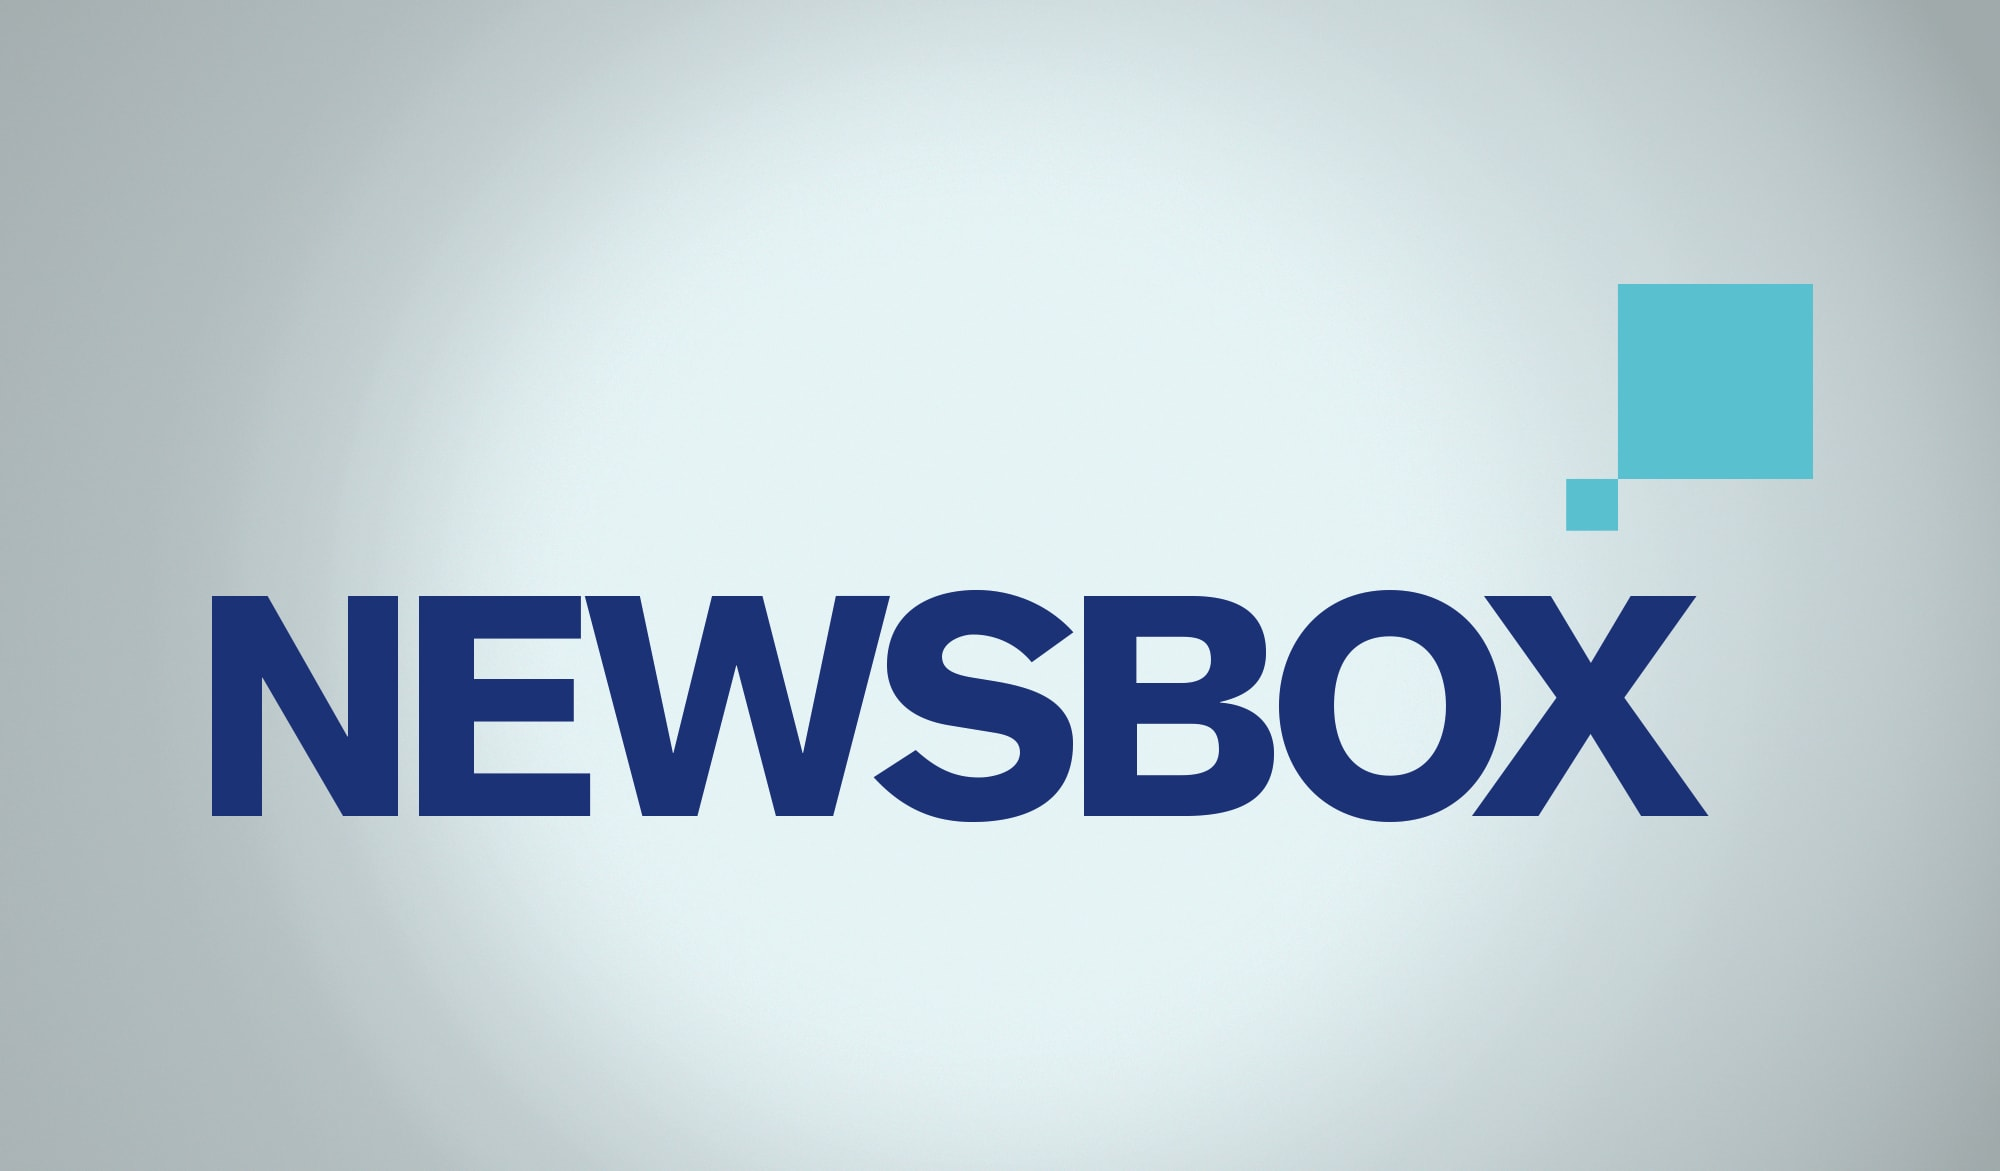 Newsbox magazine logo